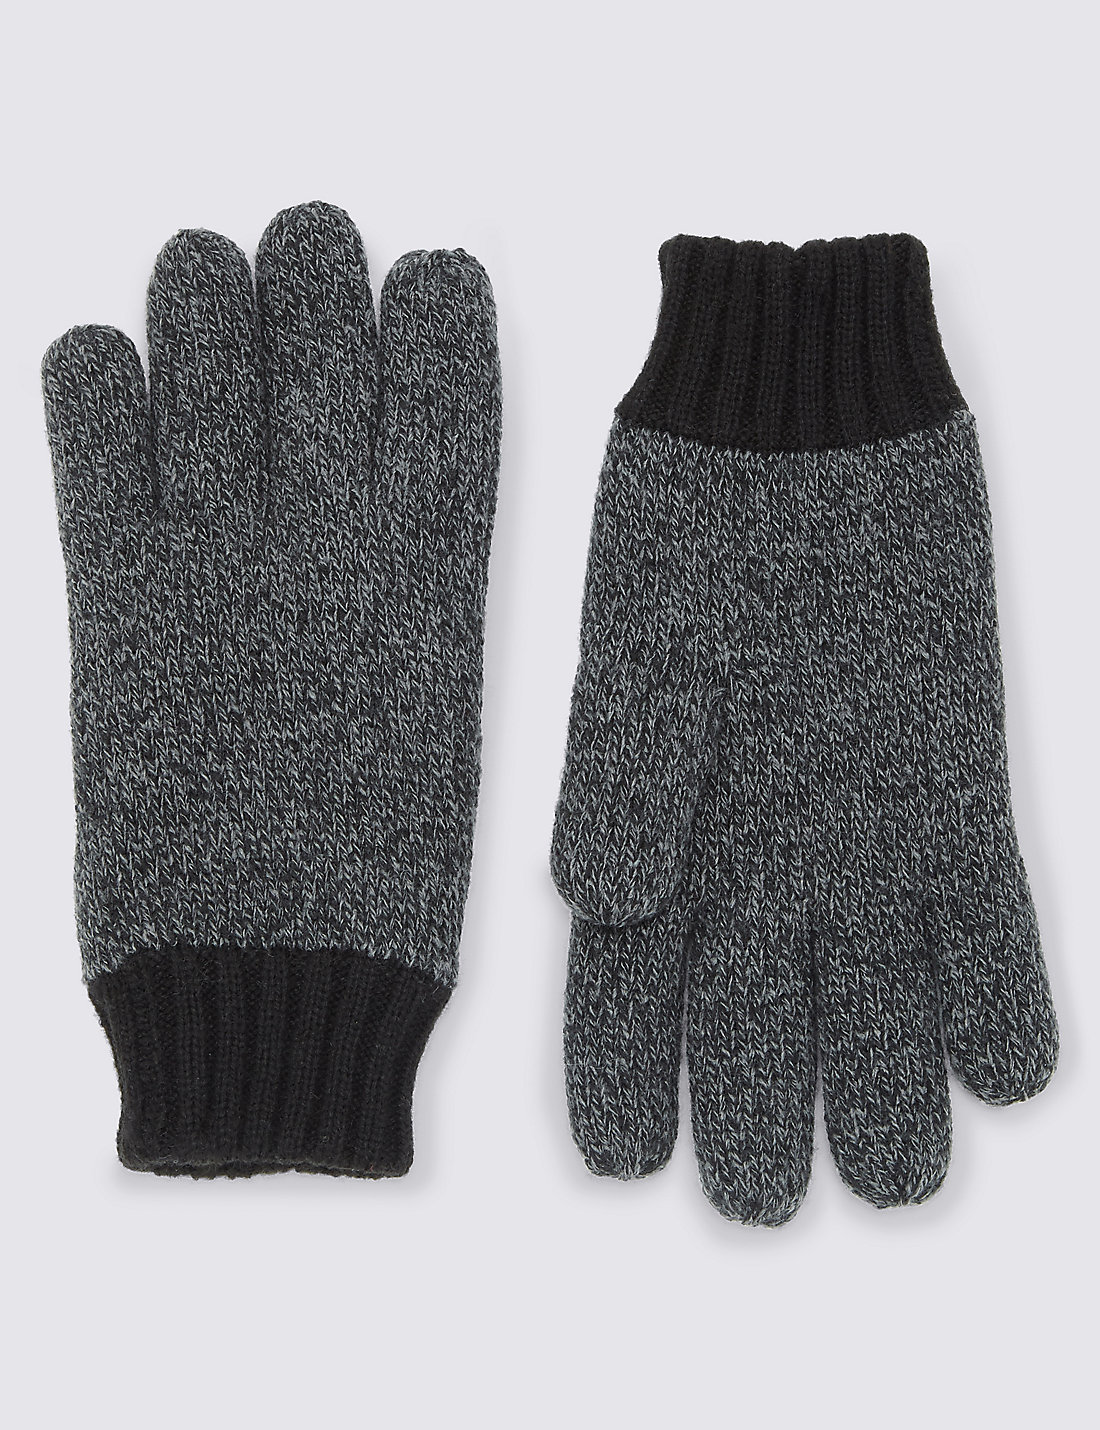 Driving gloves for sale philippines - Thinsulate Trade Knitted Gloves